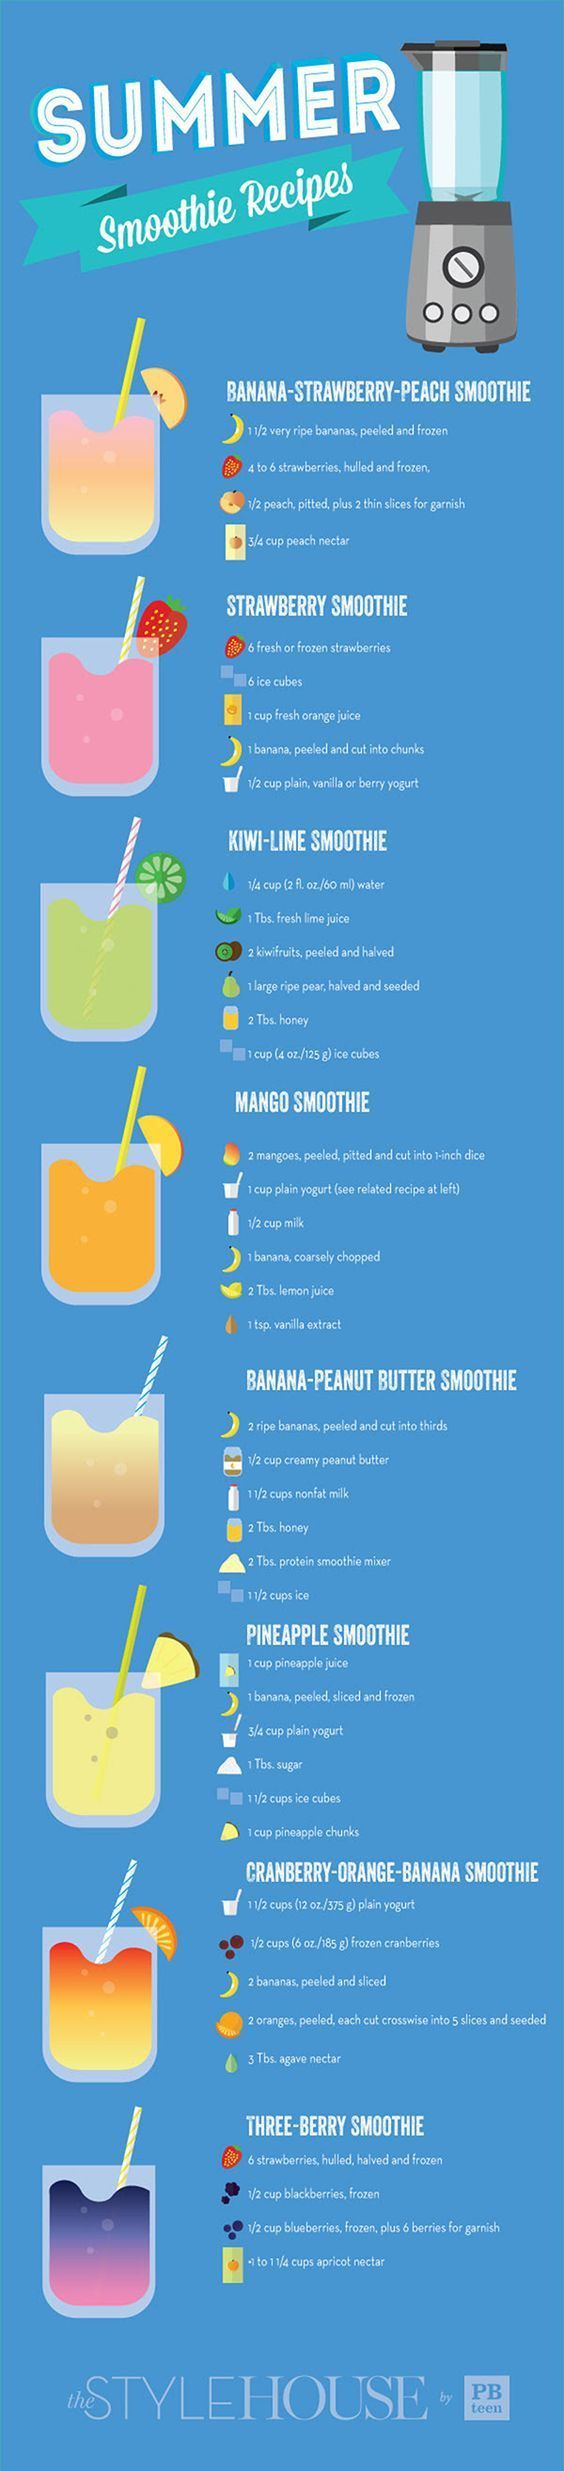 8 Summer Smoothies - Recipes - SavingsMania More